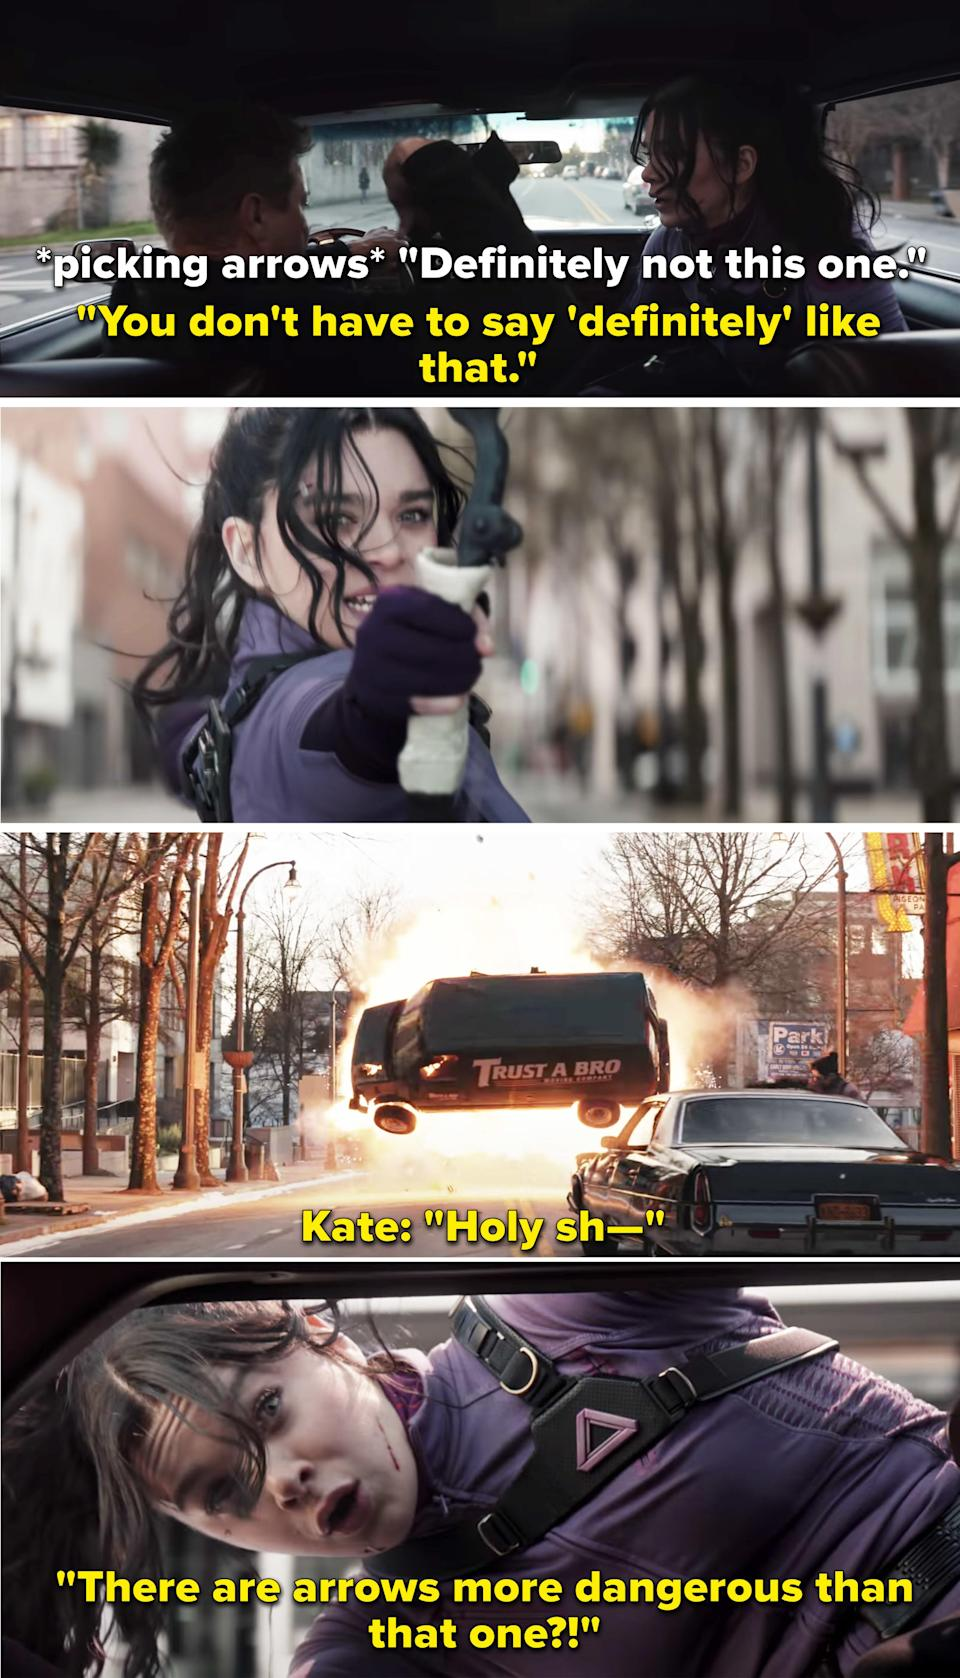 As they are involved in a car chase, Clint tries to pick out an arrow for Kate to use